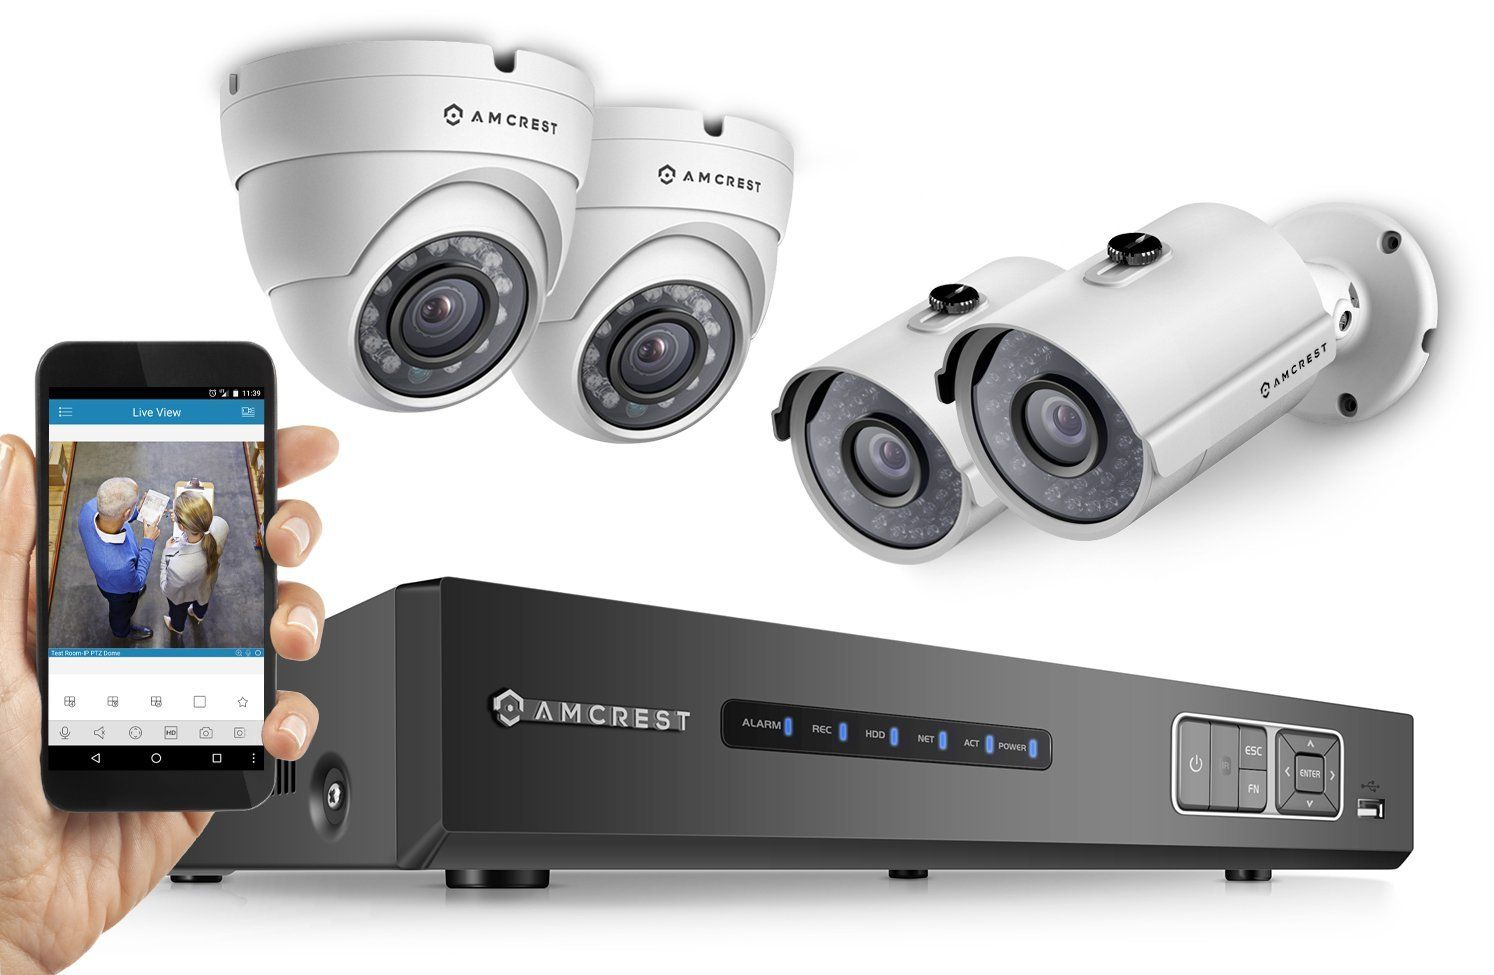 Top 10 Best Home Security Systems in 2016 Reviews | Electronics ...